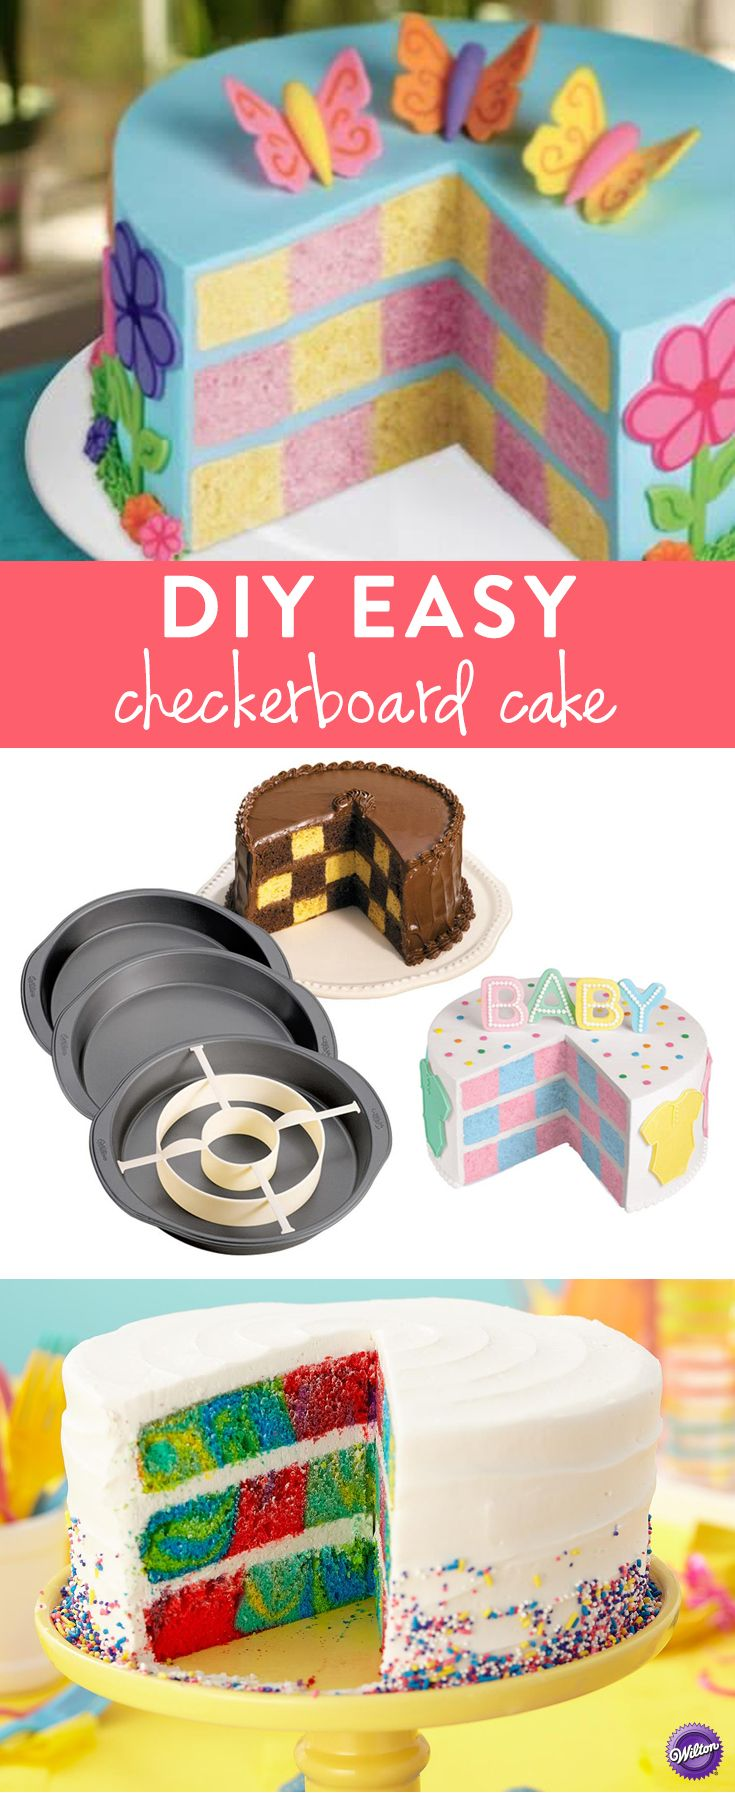 Wilton Checkerboard Cake Set - Make checkerboard cakes as easy as 1-2-3 with Wilton's Checkerboard Cake Set! The set includes three 9-in. x 1.5-in. cake pans plus the dividing ring, making three-layer checkerboard cakes easy to bake and create.